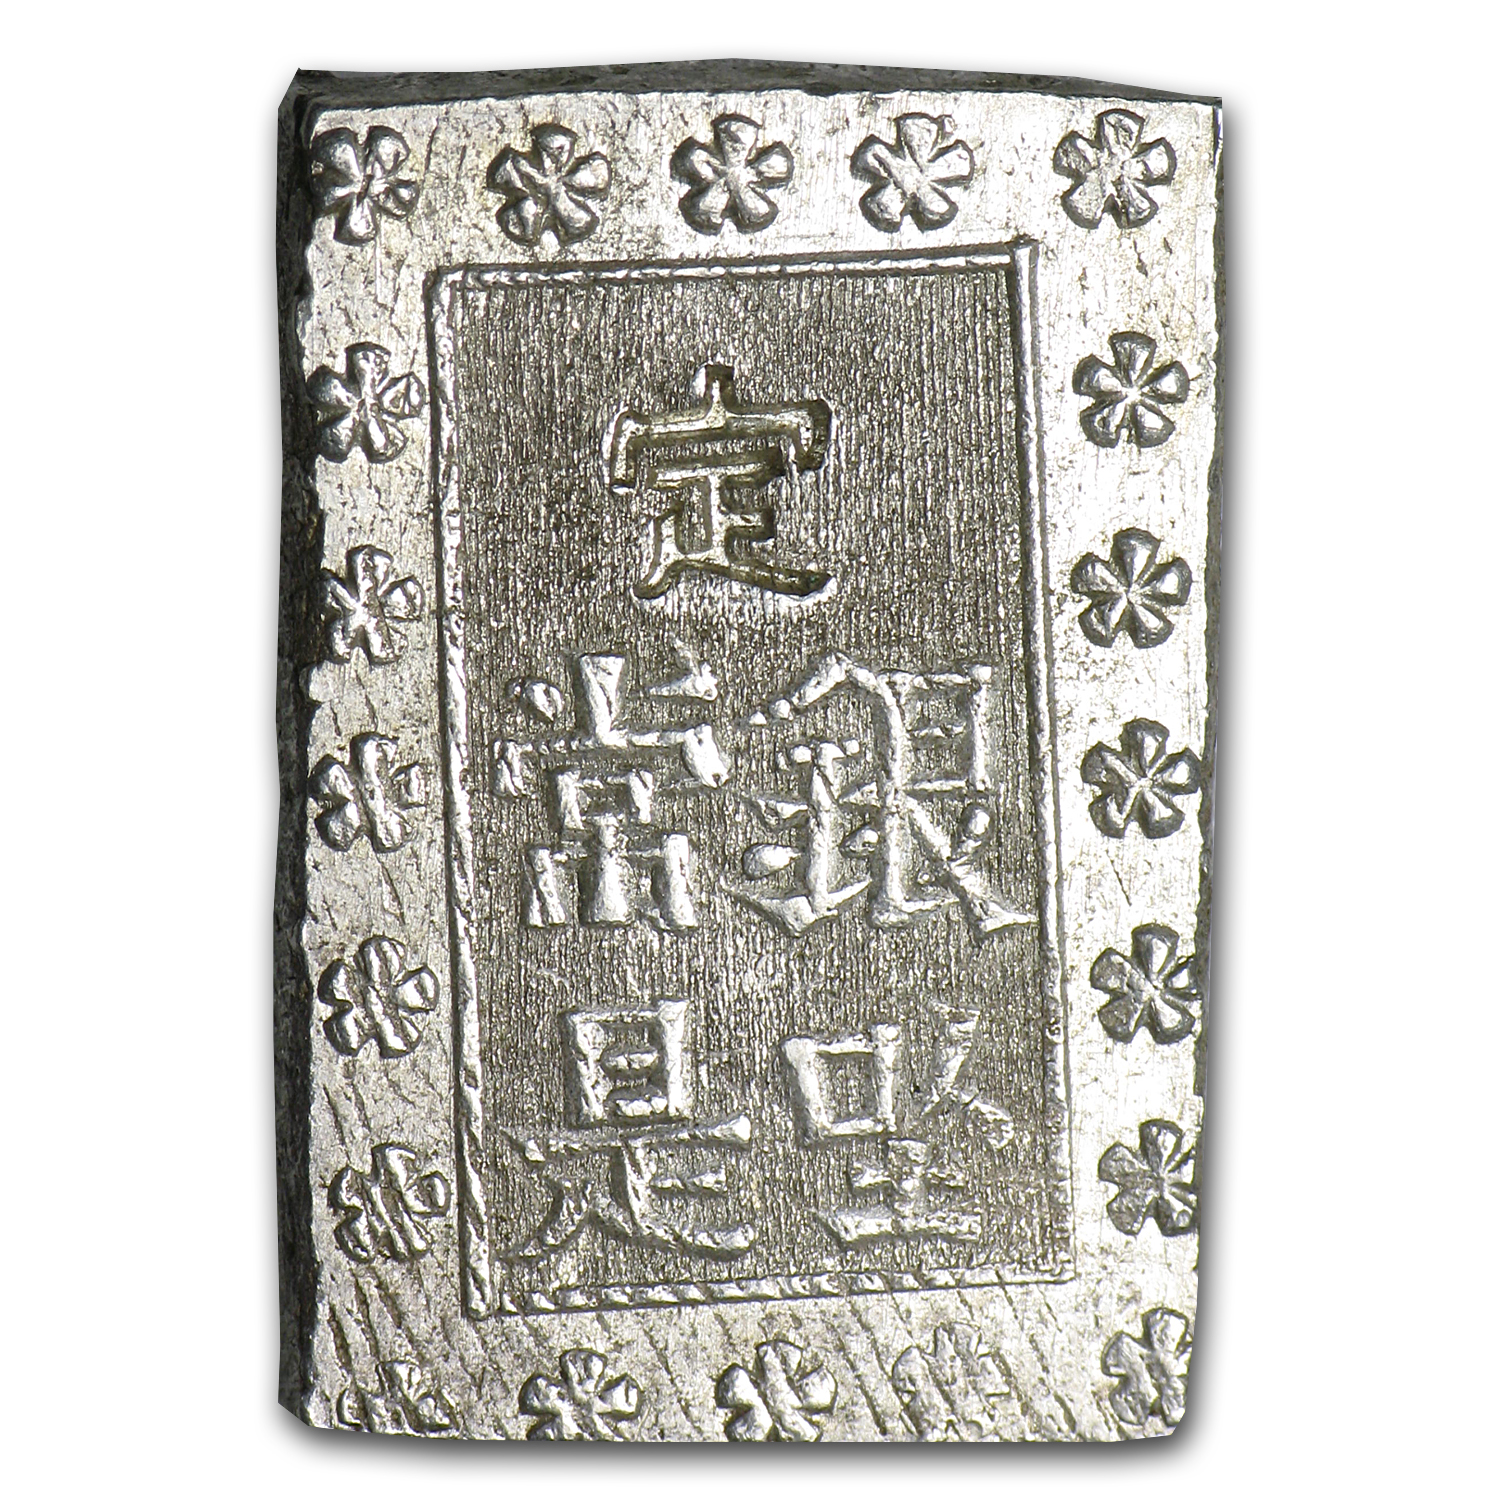 Japan Rectangular Silver 2 BU (Uncirculated) (C# 16a)